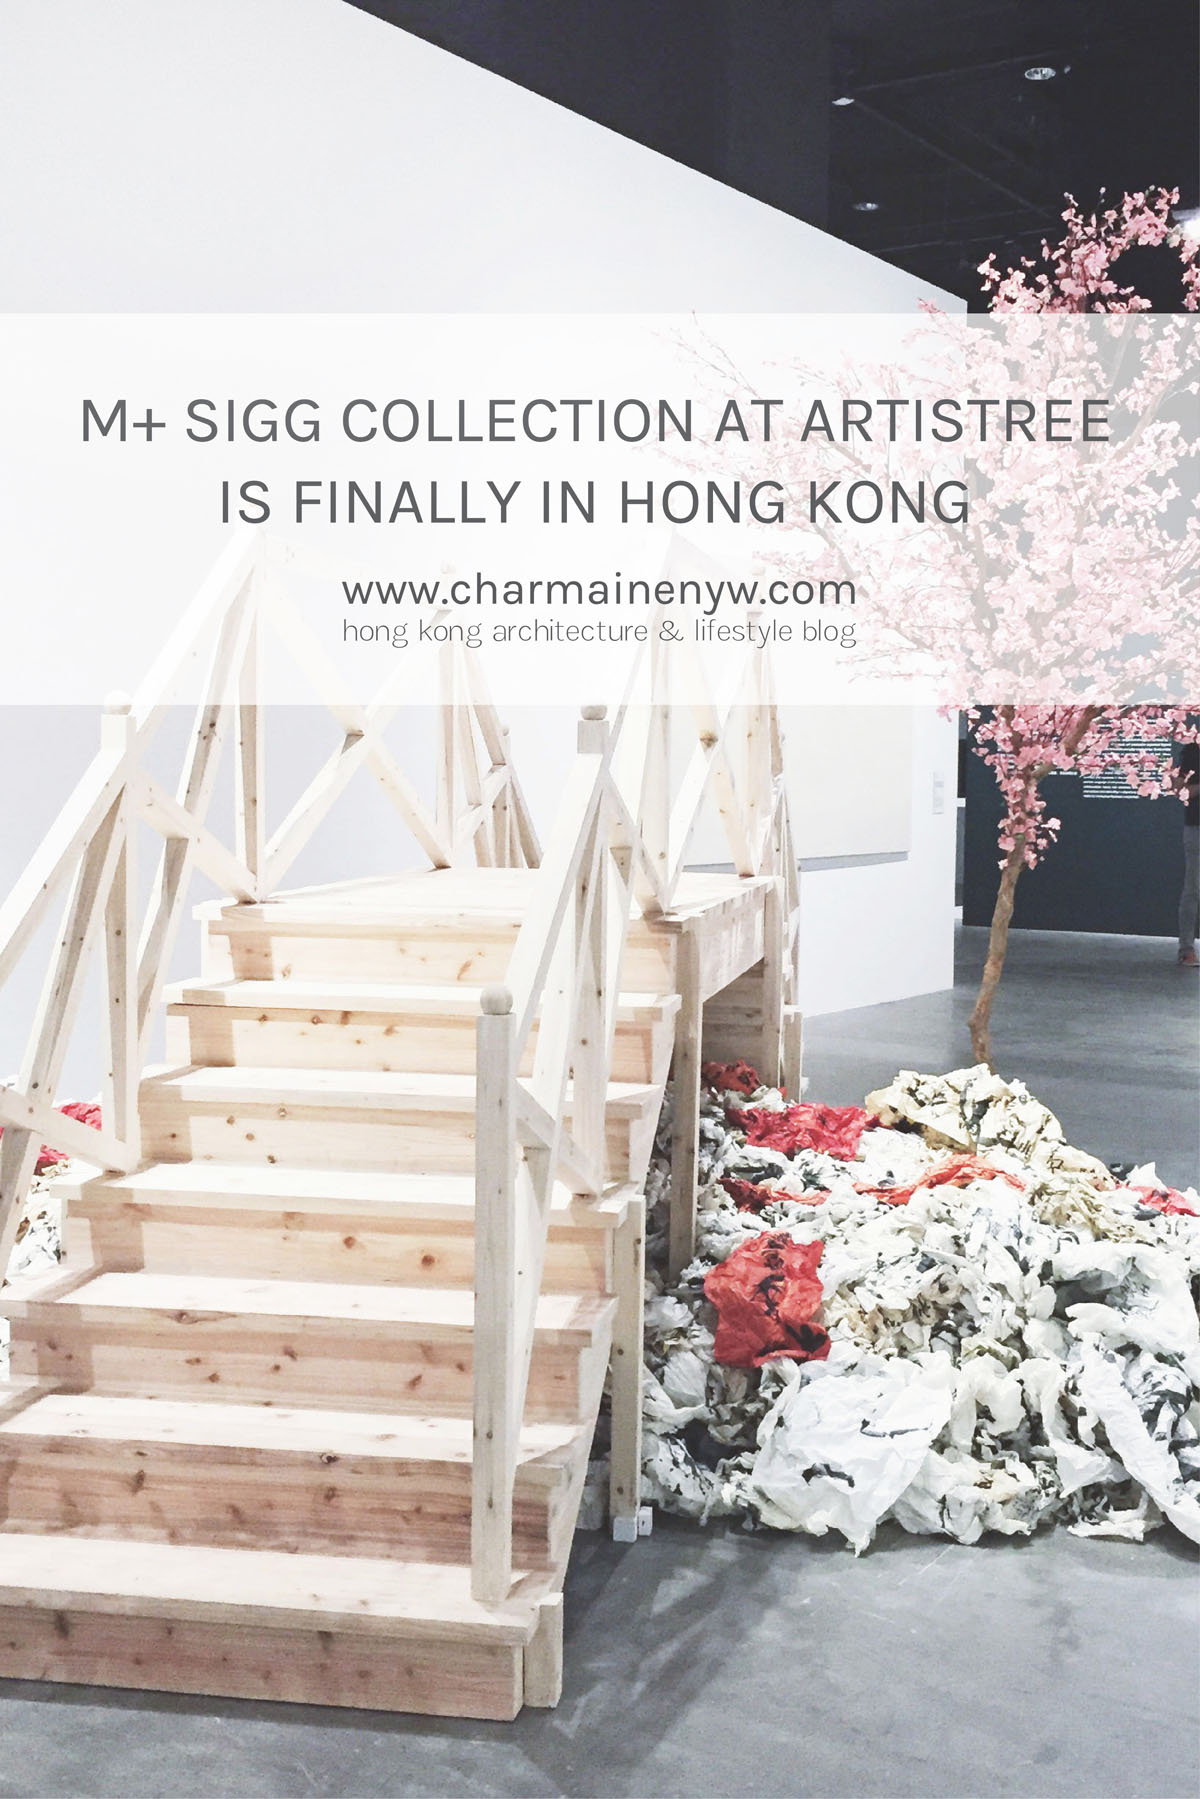 M+ Sigg Collection at Artistree